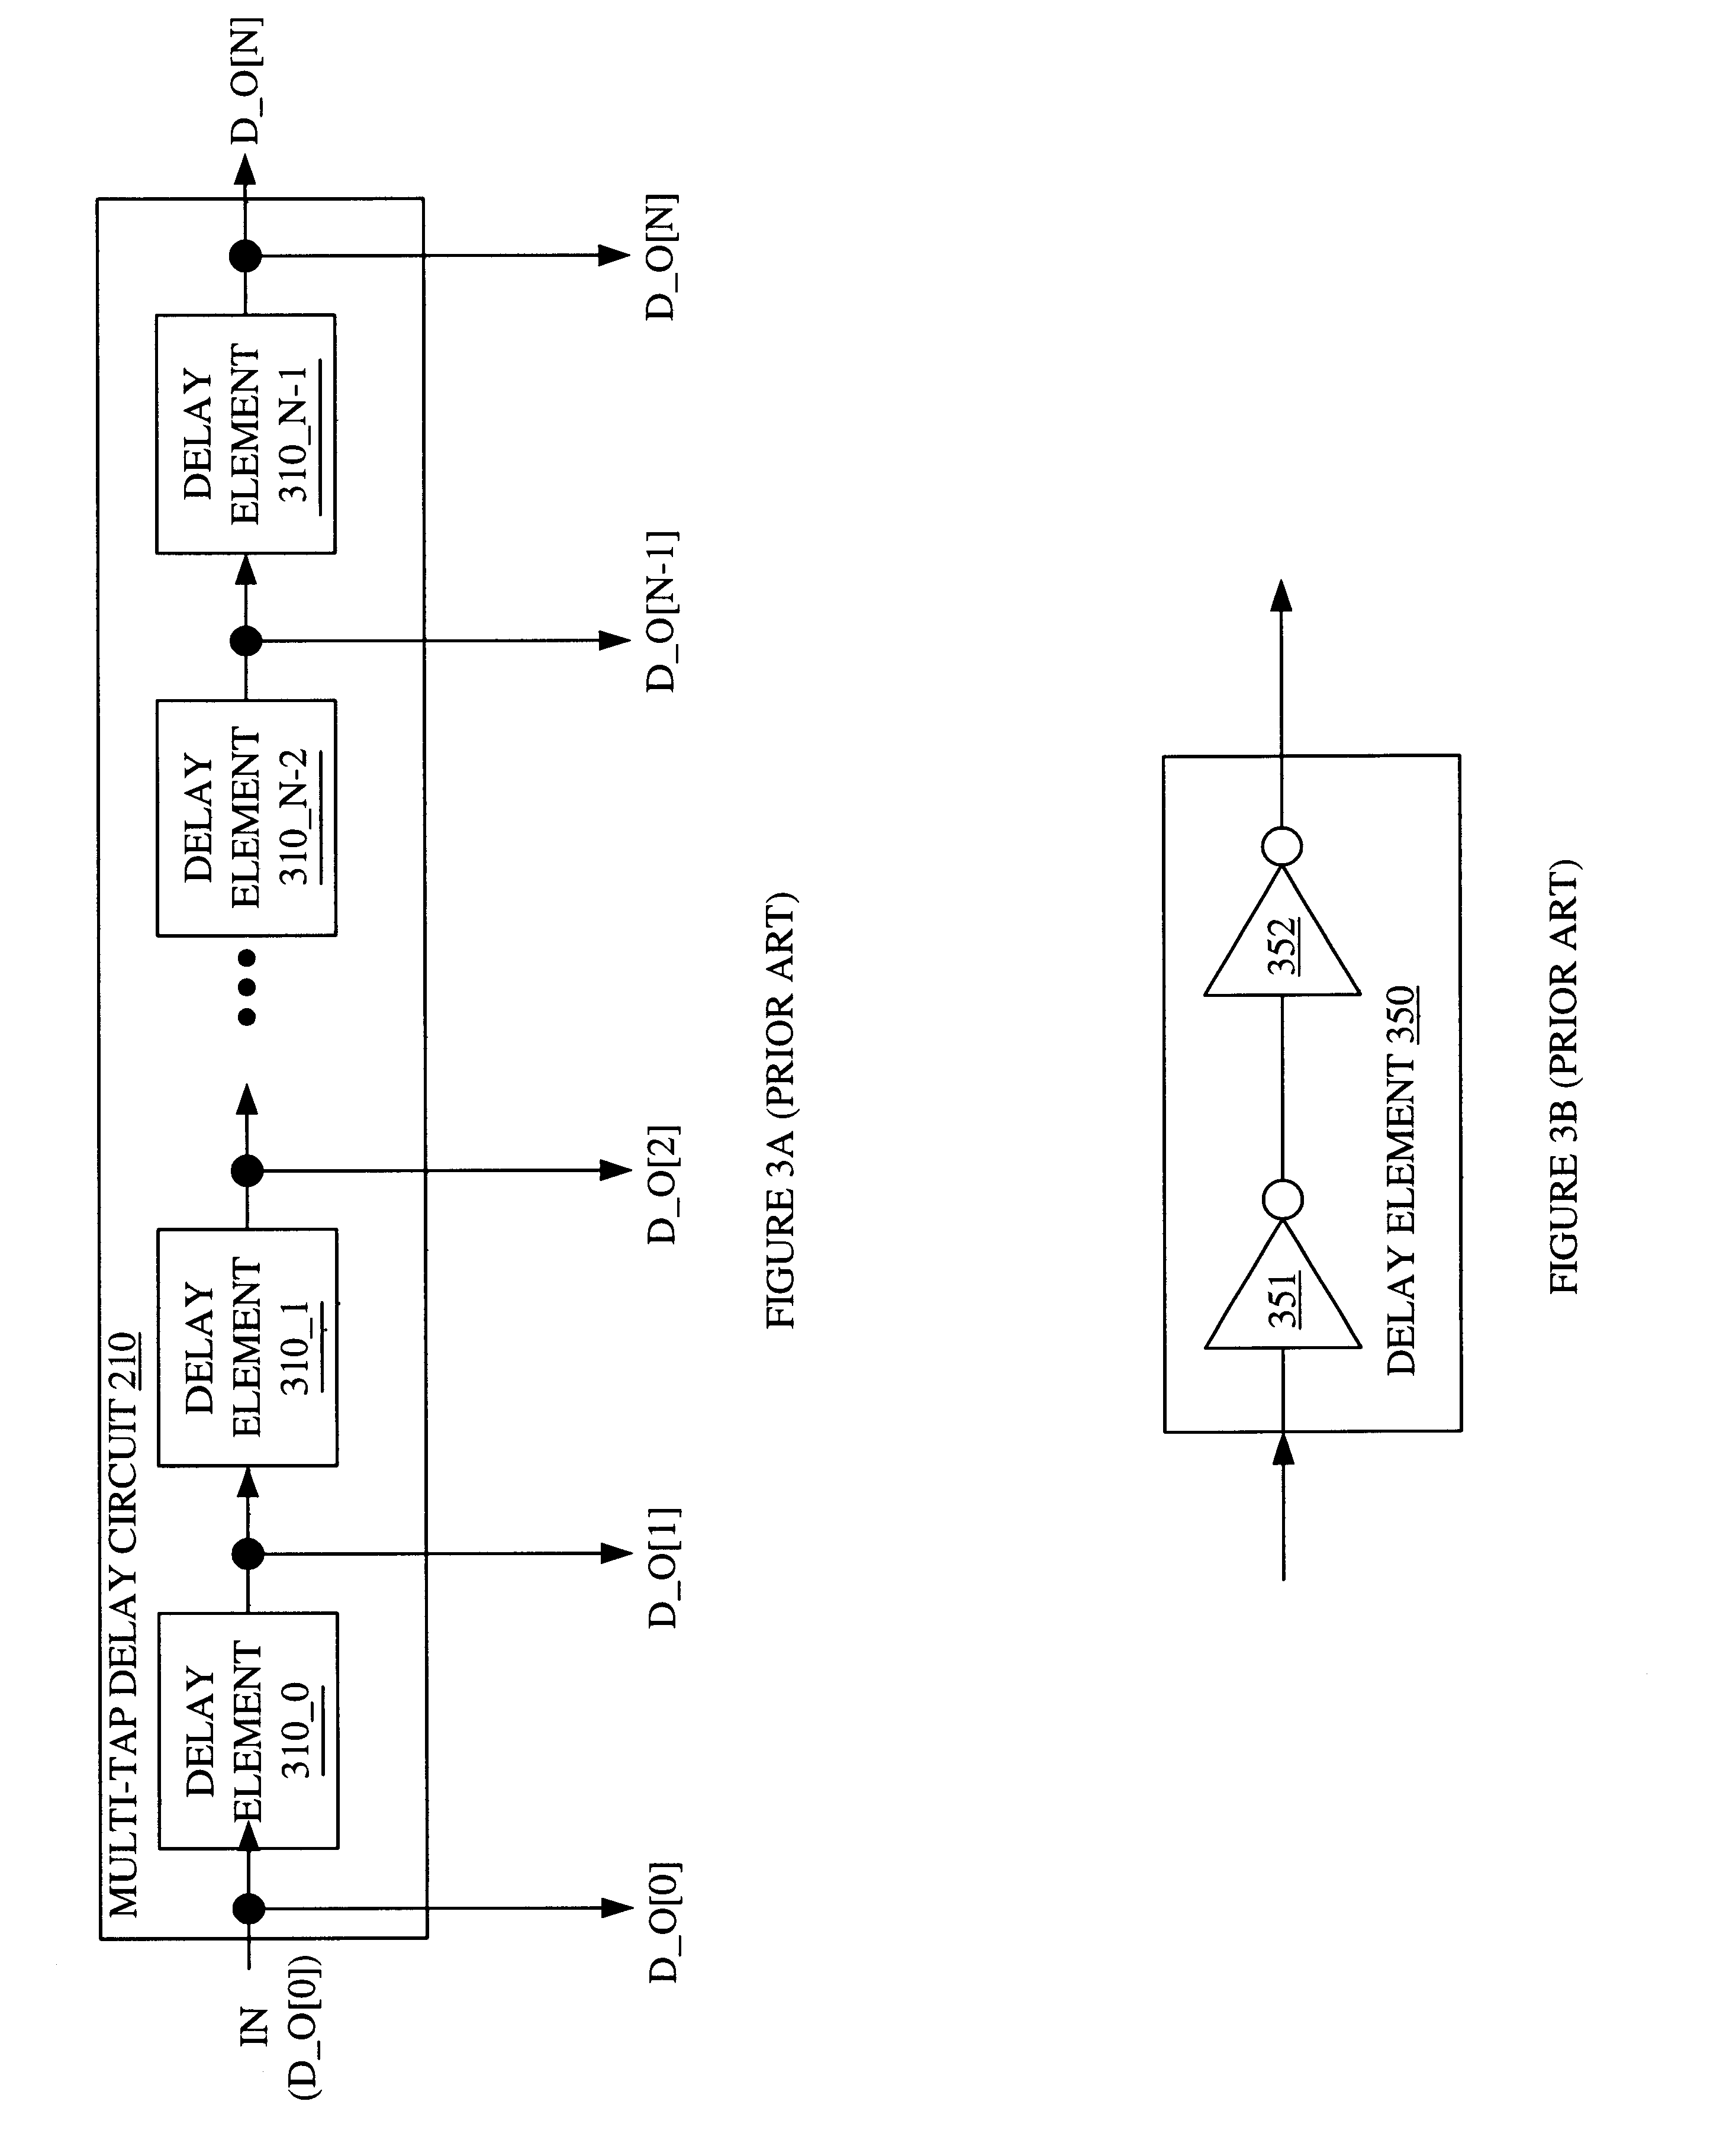 Patent Us6400735 Glitchless Delay Line Using Gray Code Multiplexer Figure 8 4x1 With 2x4 Decoder Selector Block Diagram Drawing